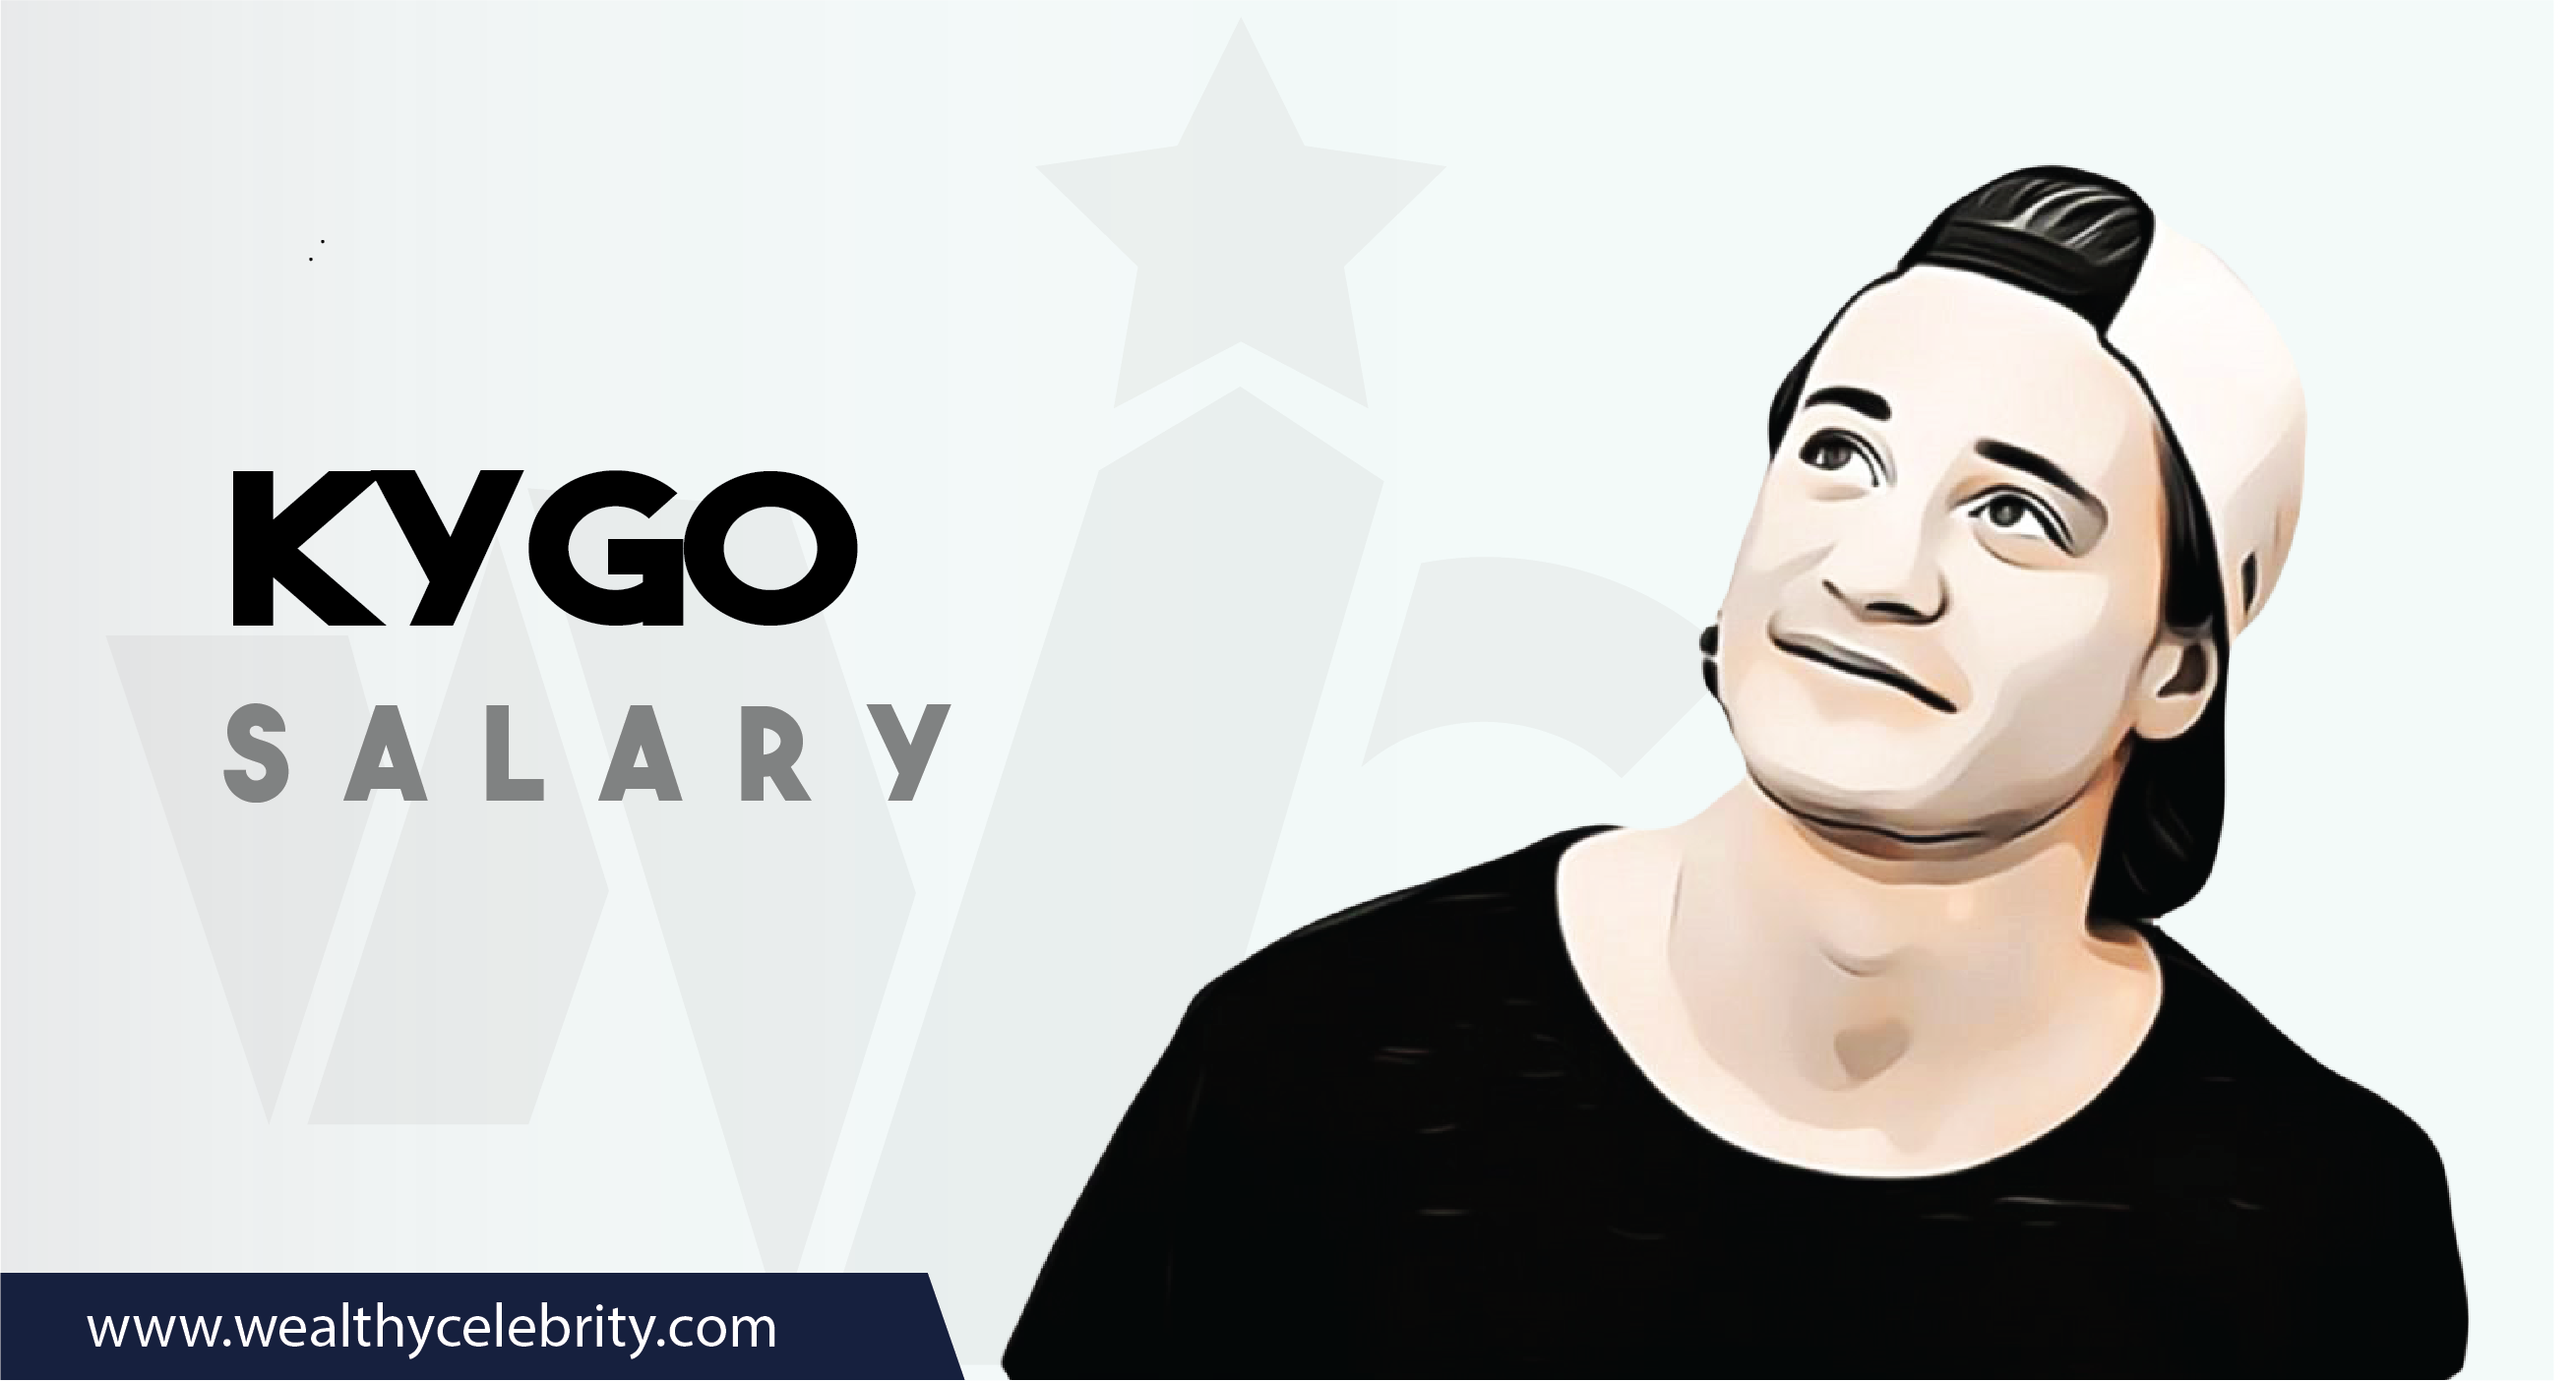 Kygo DJ - Current Salary Net Worth